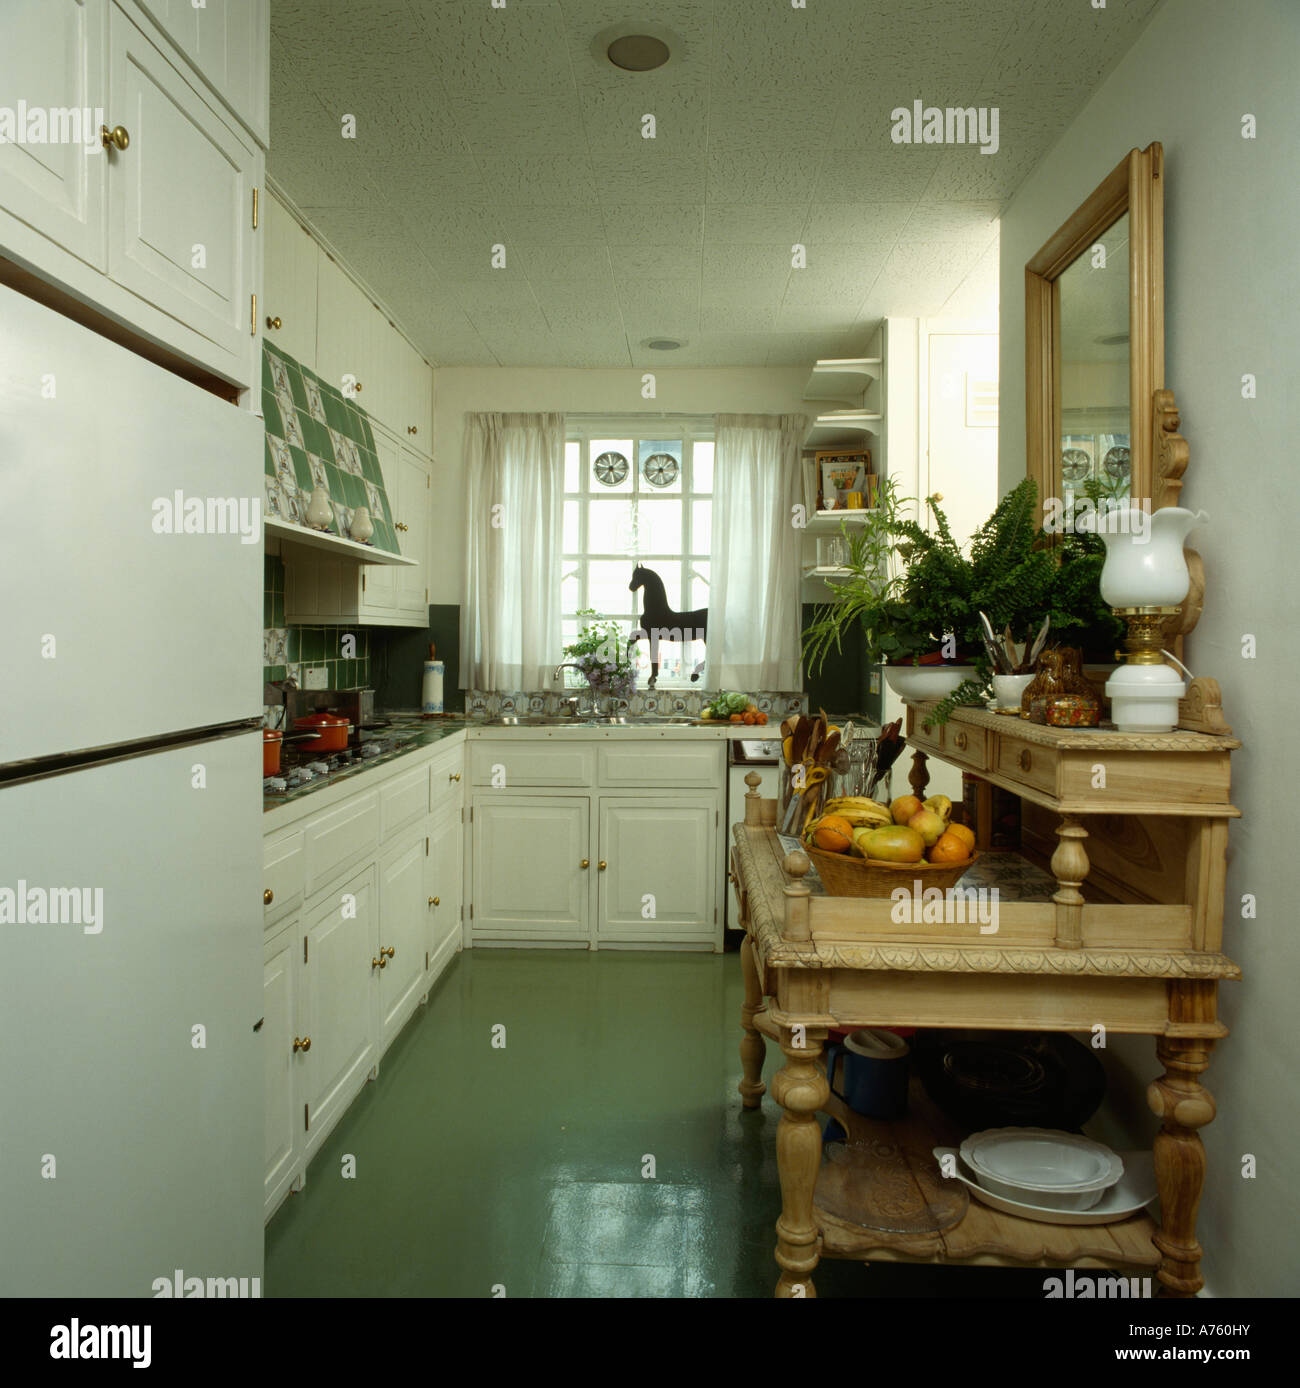 Green Floor In Narrow White Kitchen With Small Pine